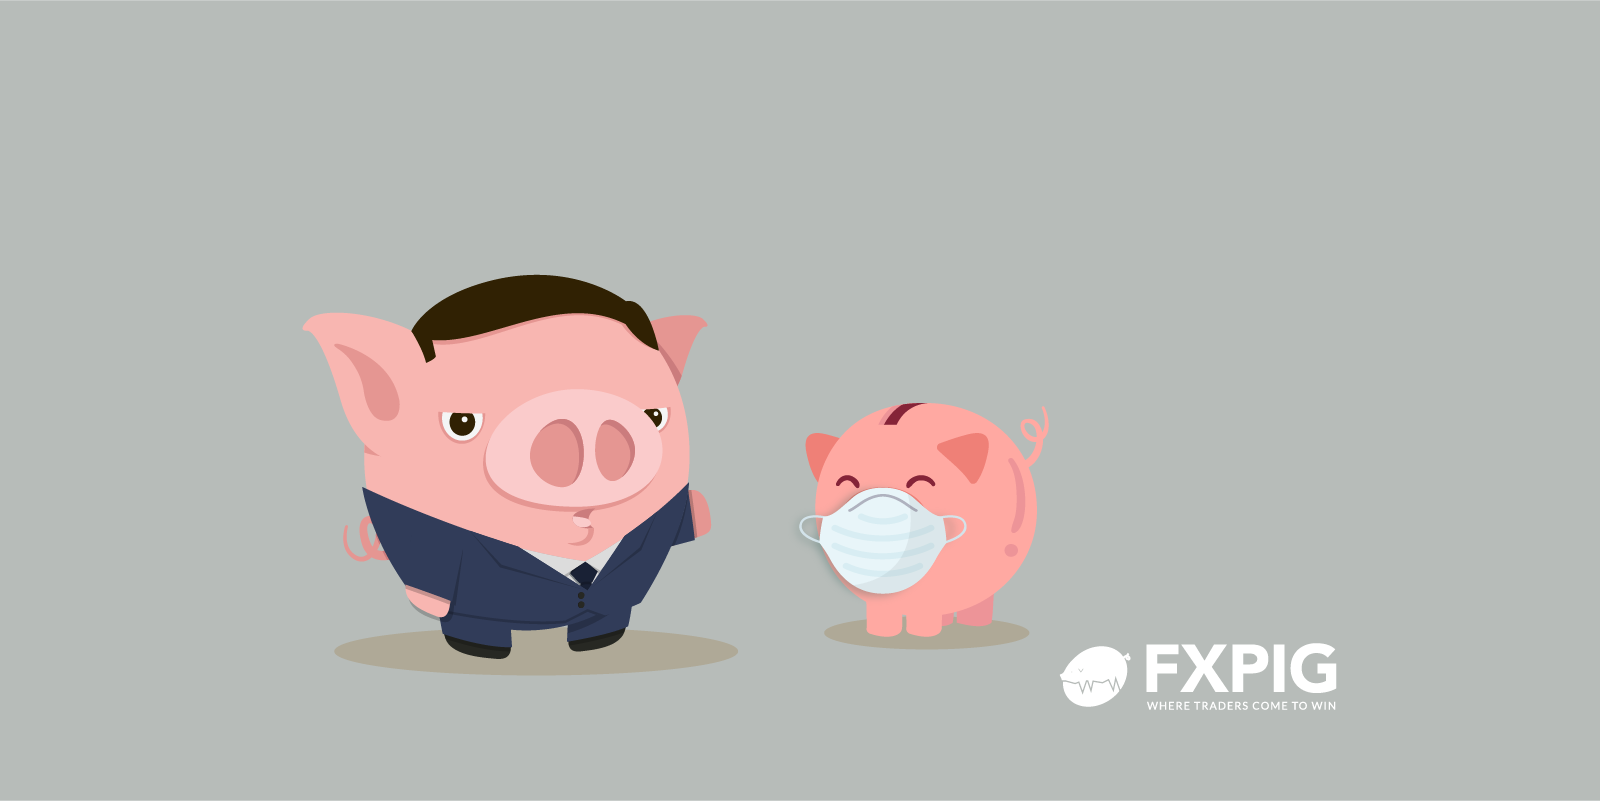 Forex_week_ahead_Economy_stalling_FXPIG